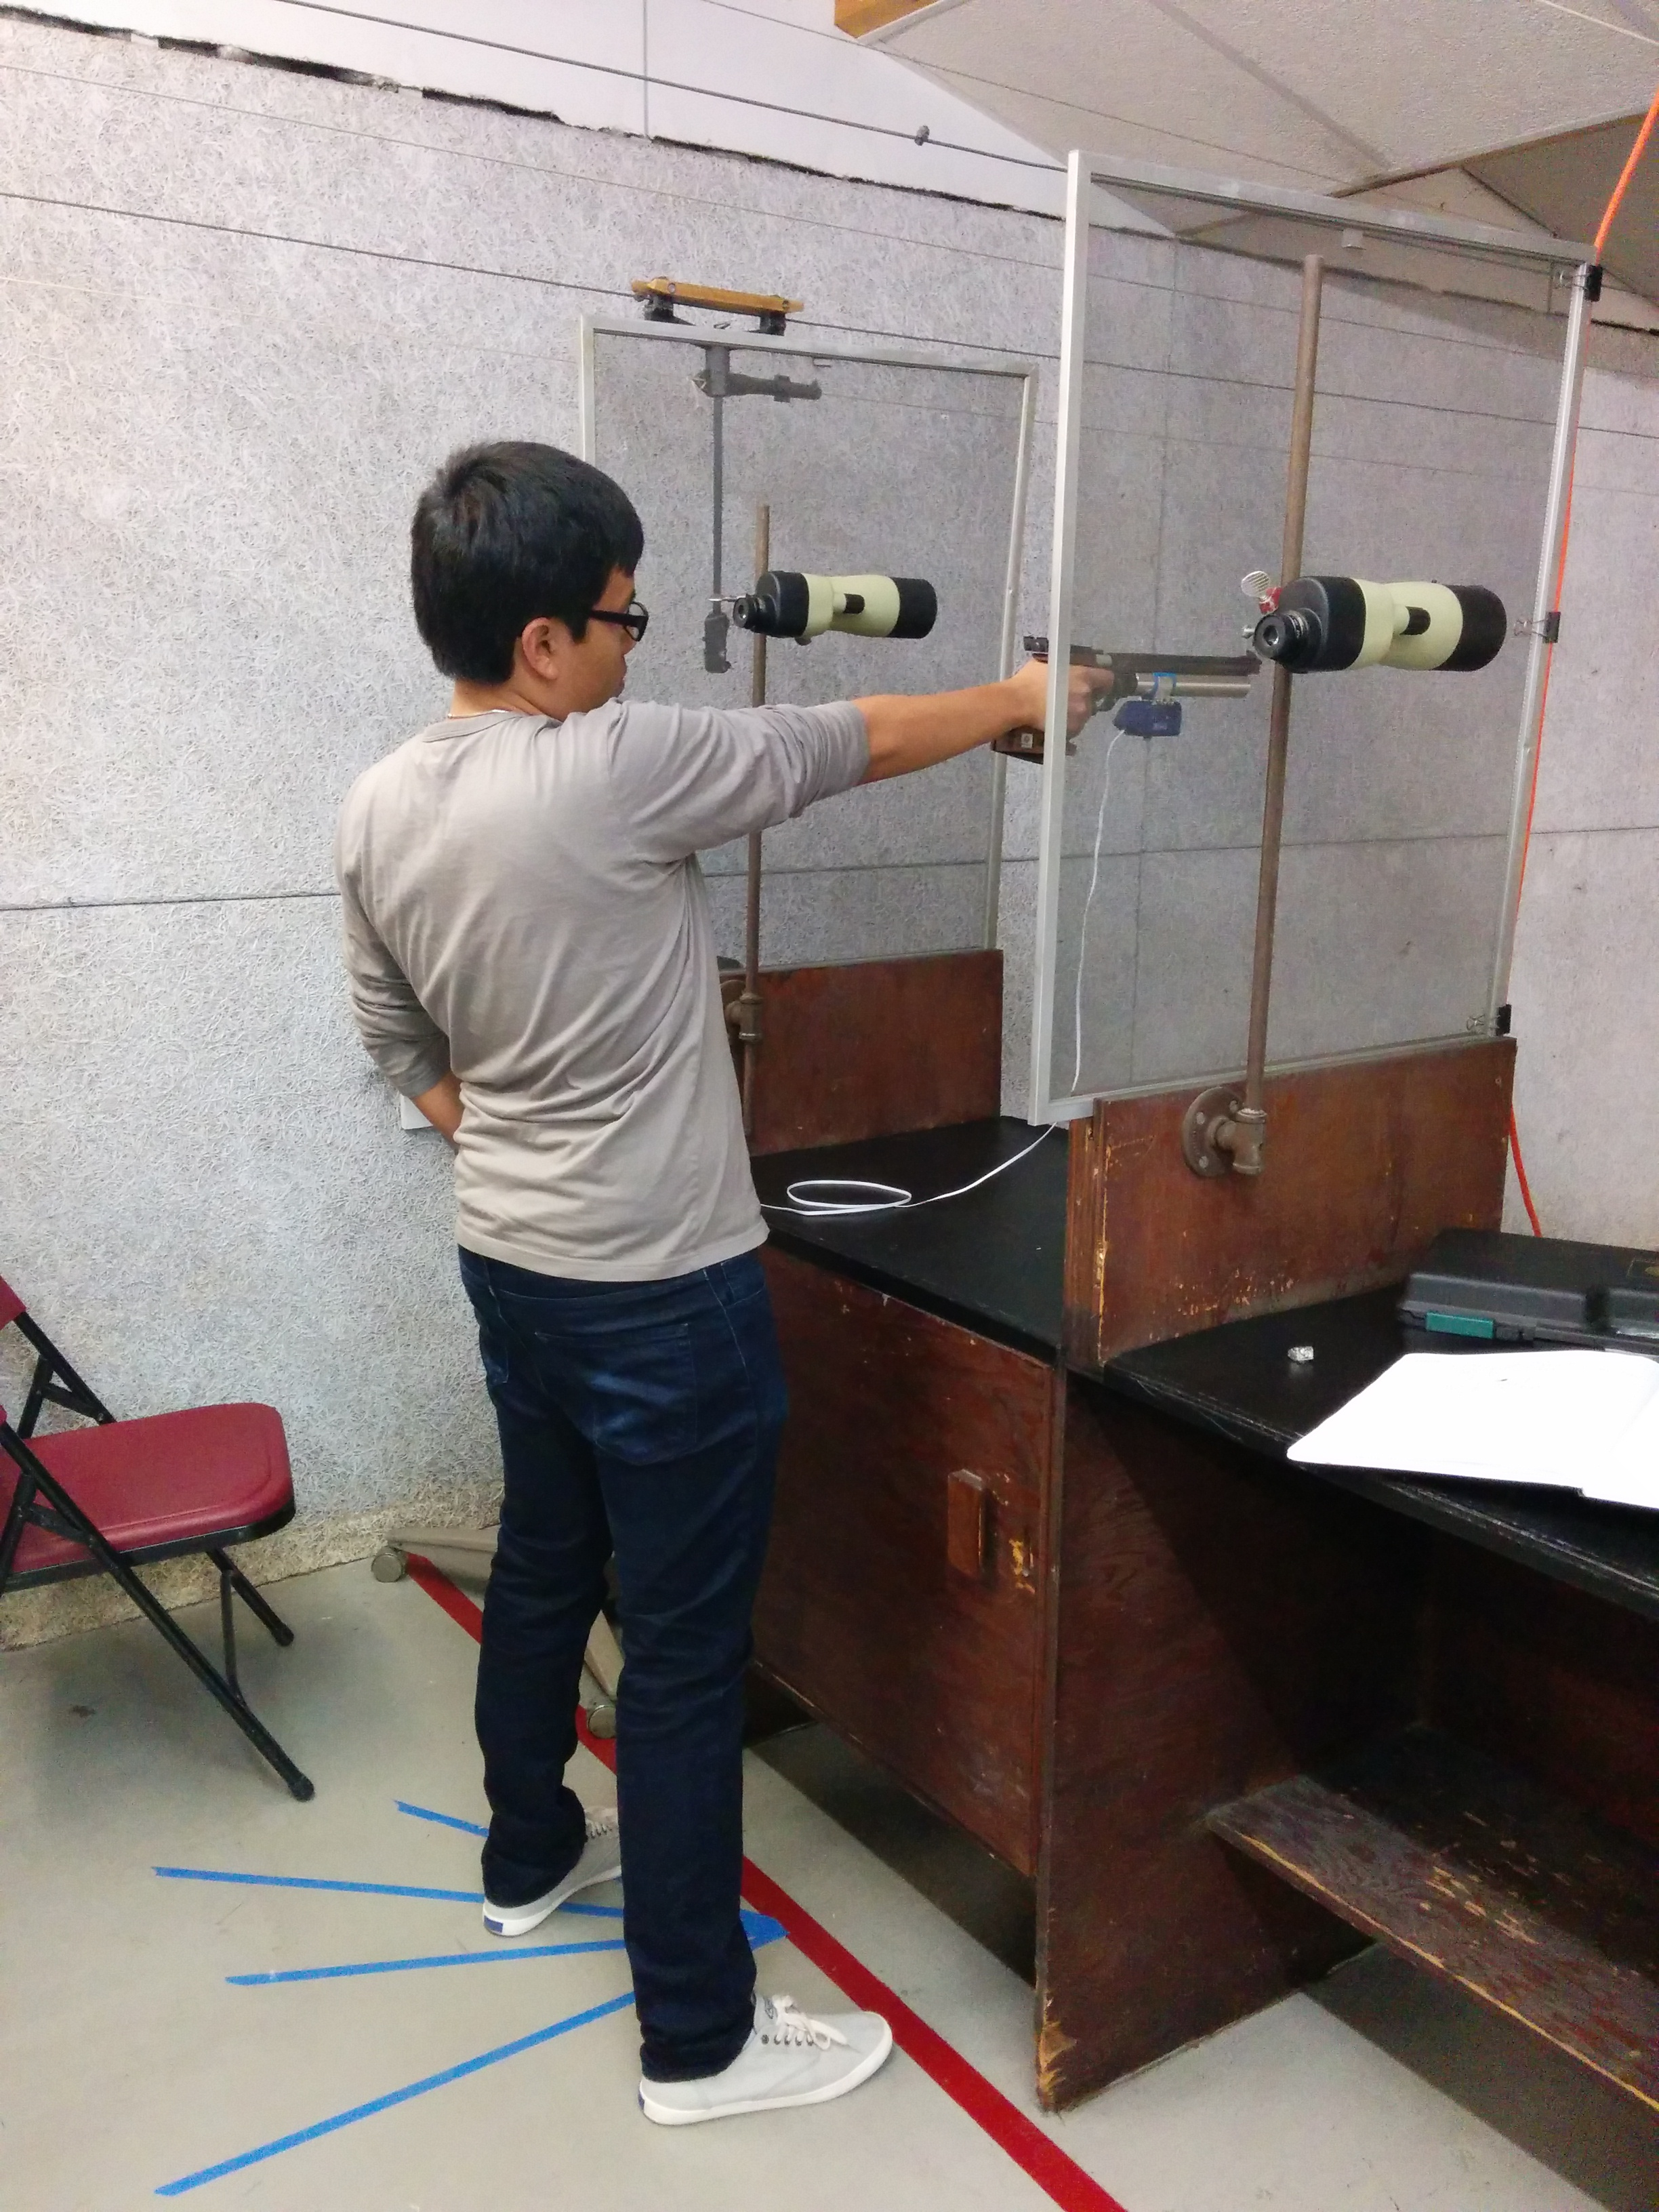 In Olympic-style shooting, the pistol is operated from a standing, unsupported position. I am shown executing a standard shot process.